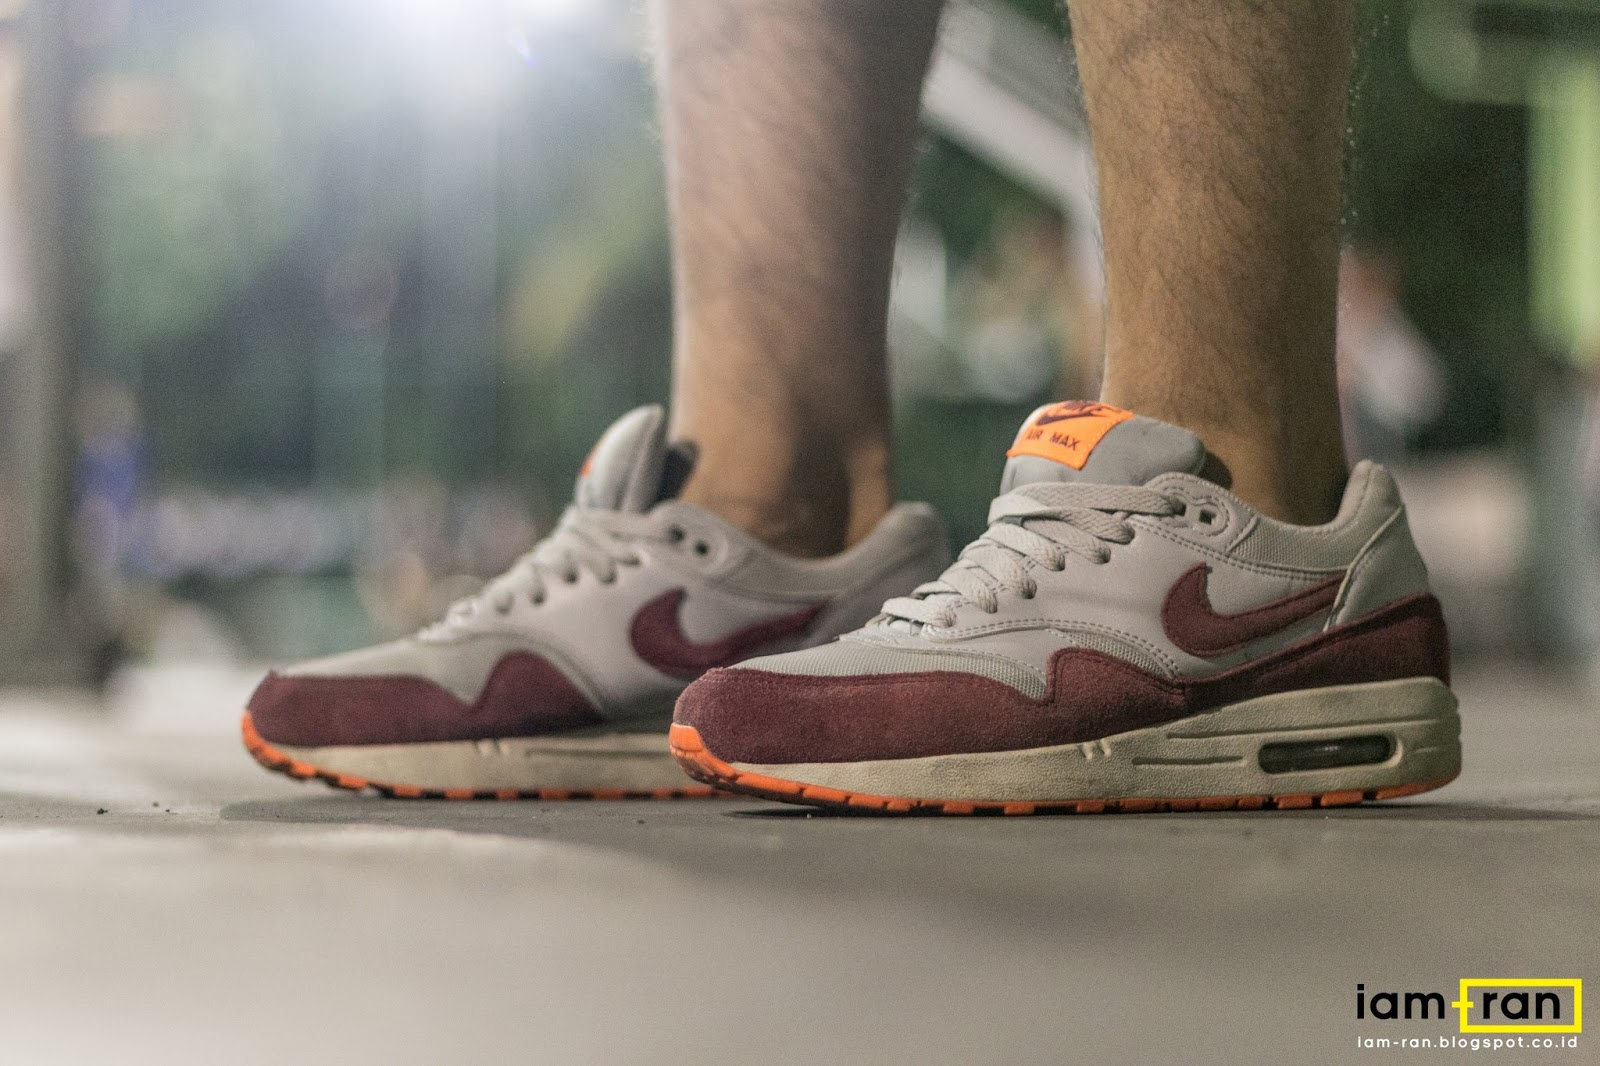 23fb2384fd IAM-RAN: ON FEET : Rioco - Nike Air Max 1 essential